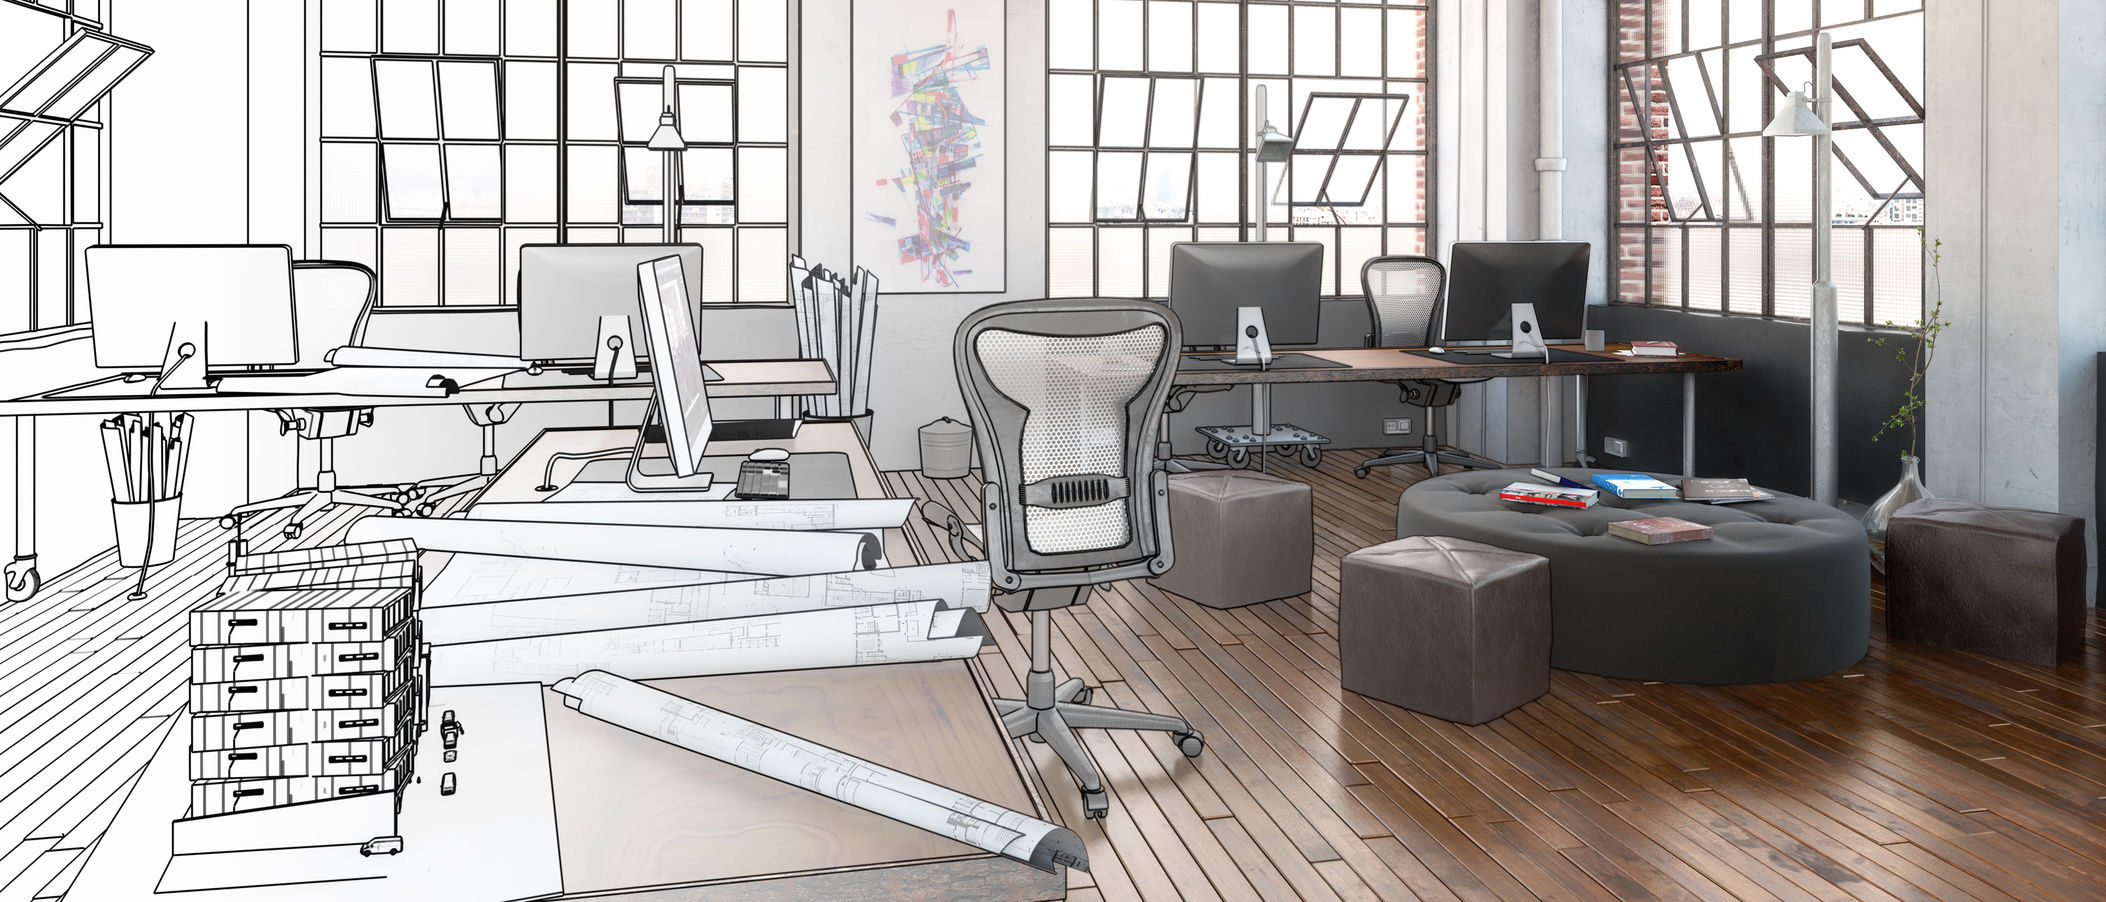 Postindustrial Office Design in Project